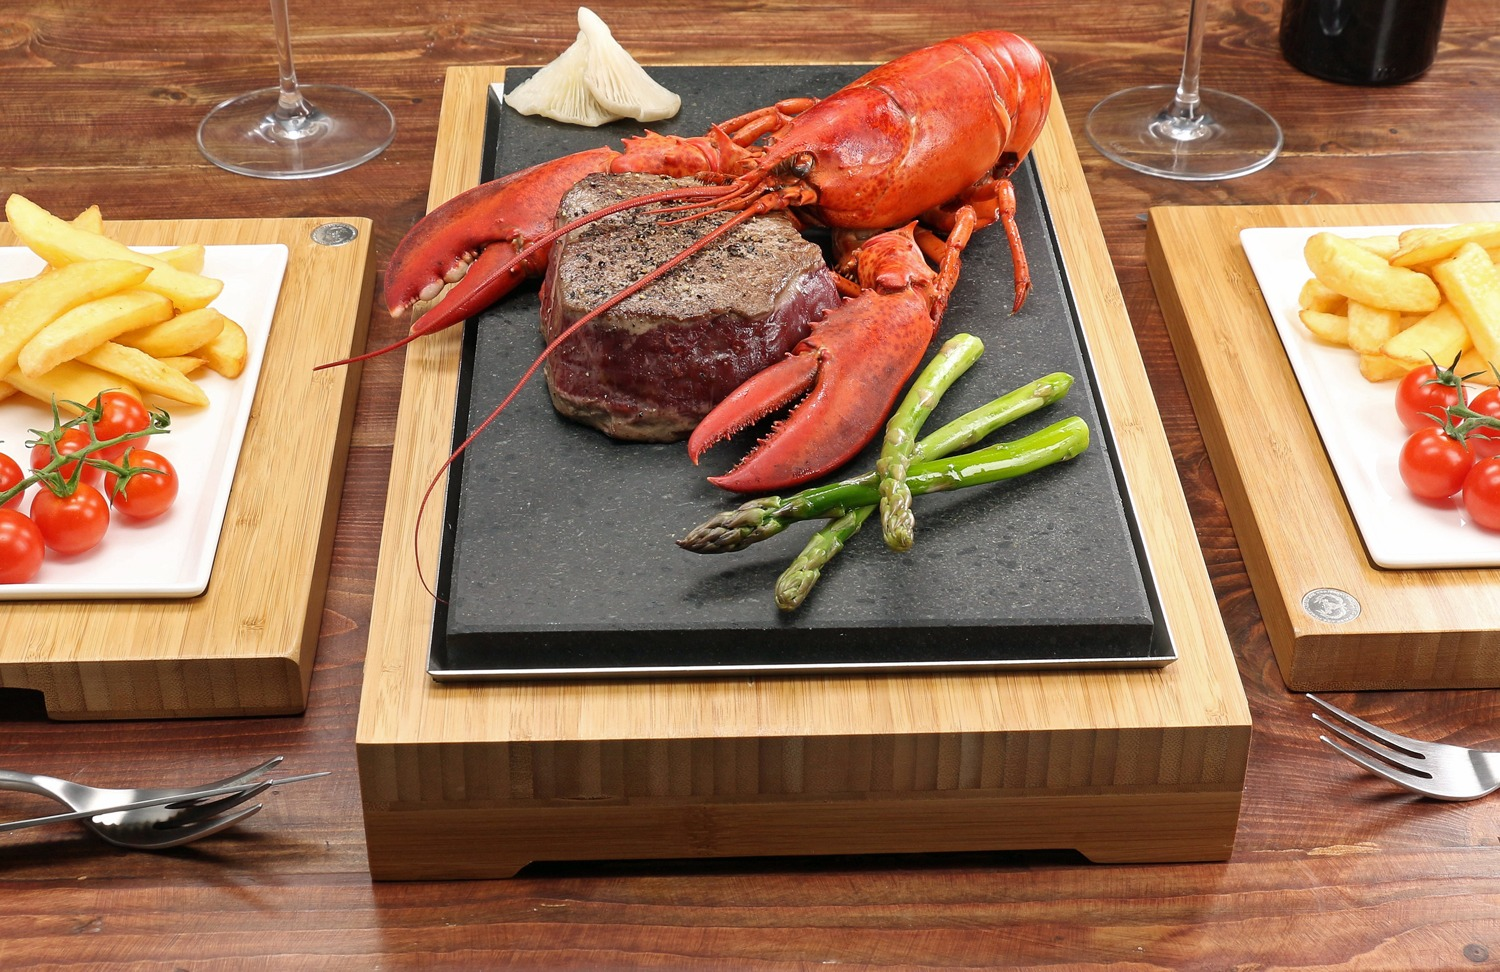 The Ultimate Surf & Turf on the Stone with Sizzling Fillet & Lobster